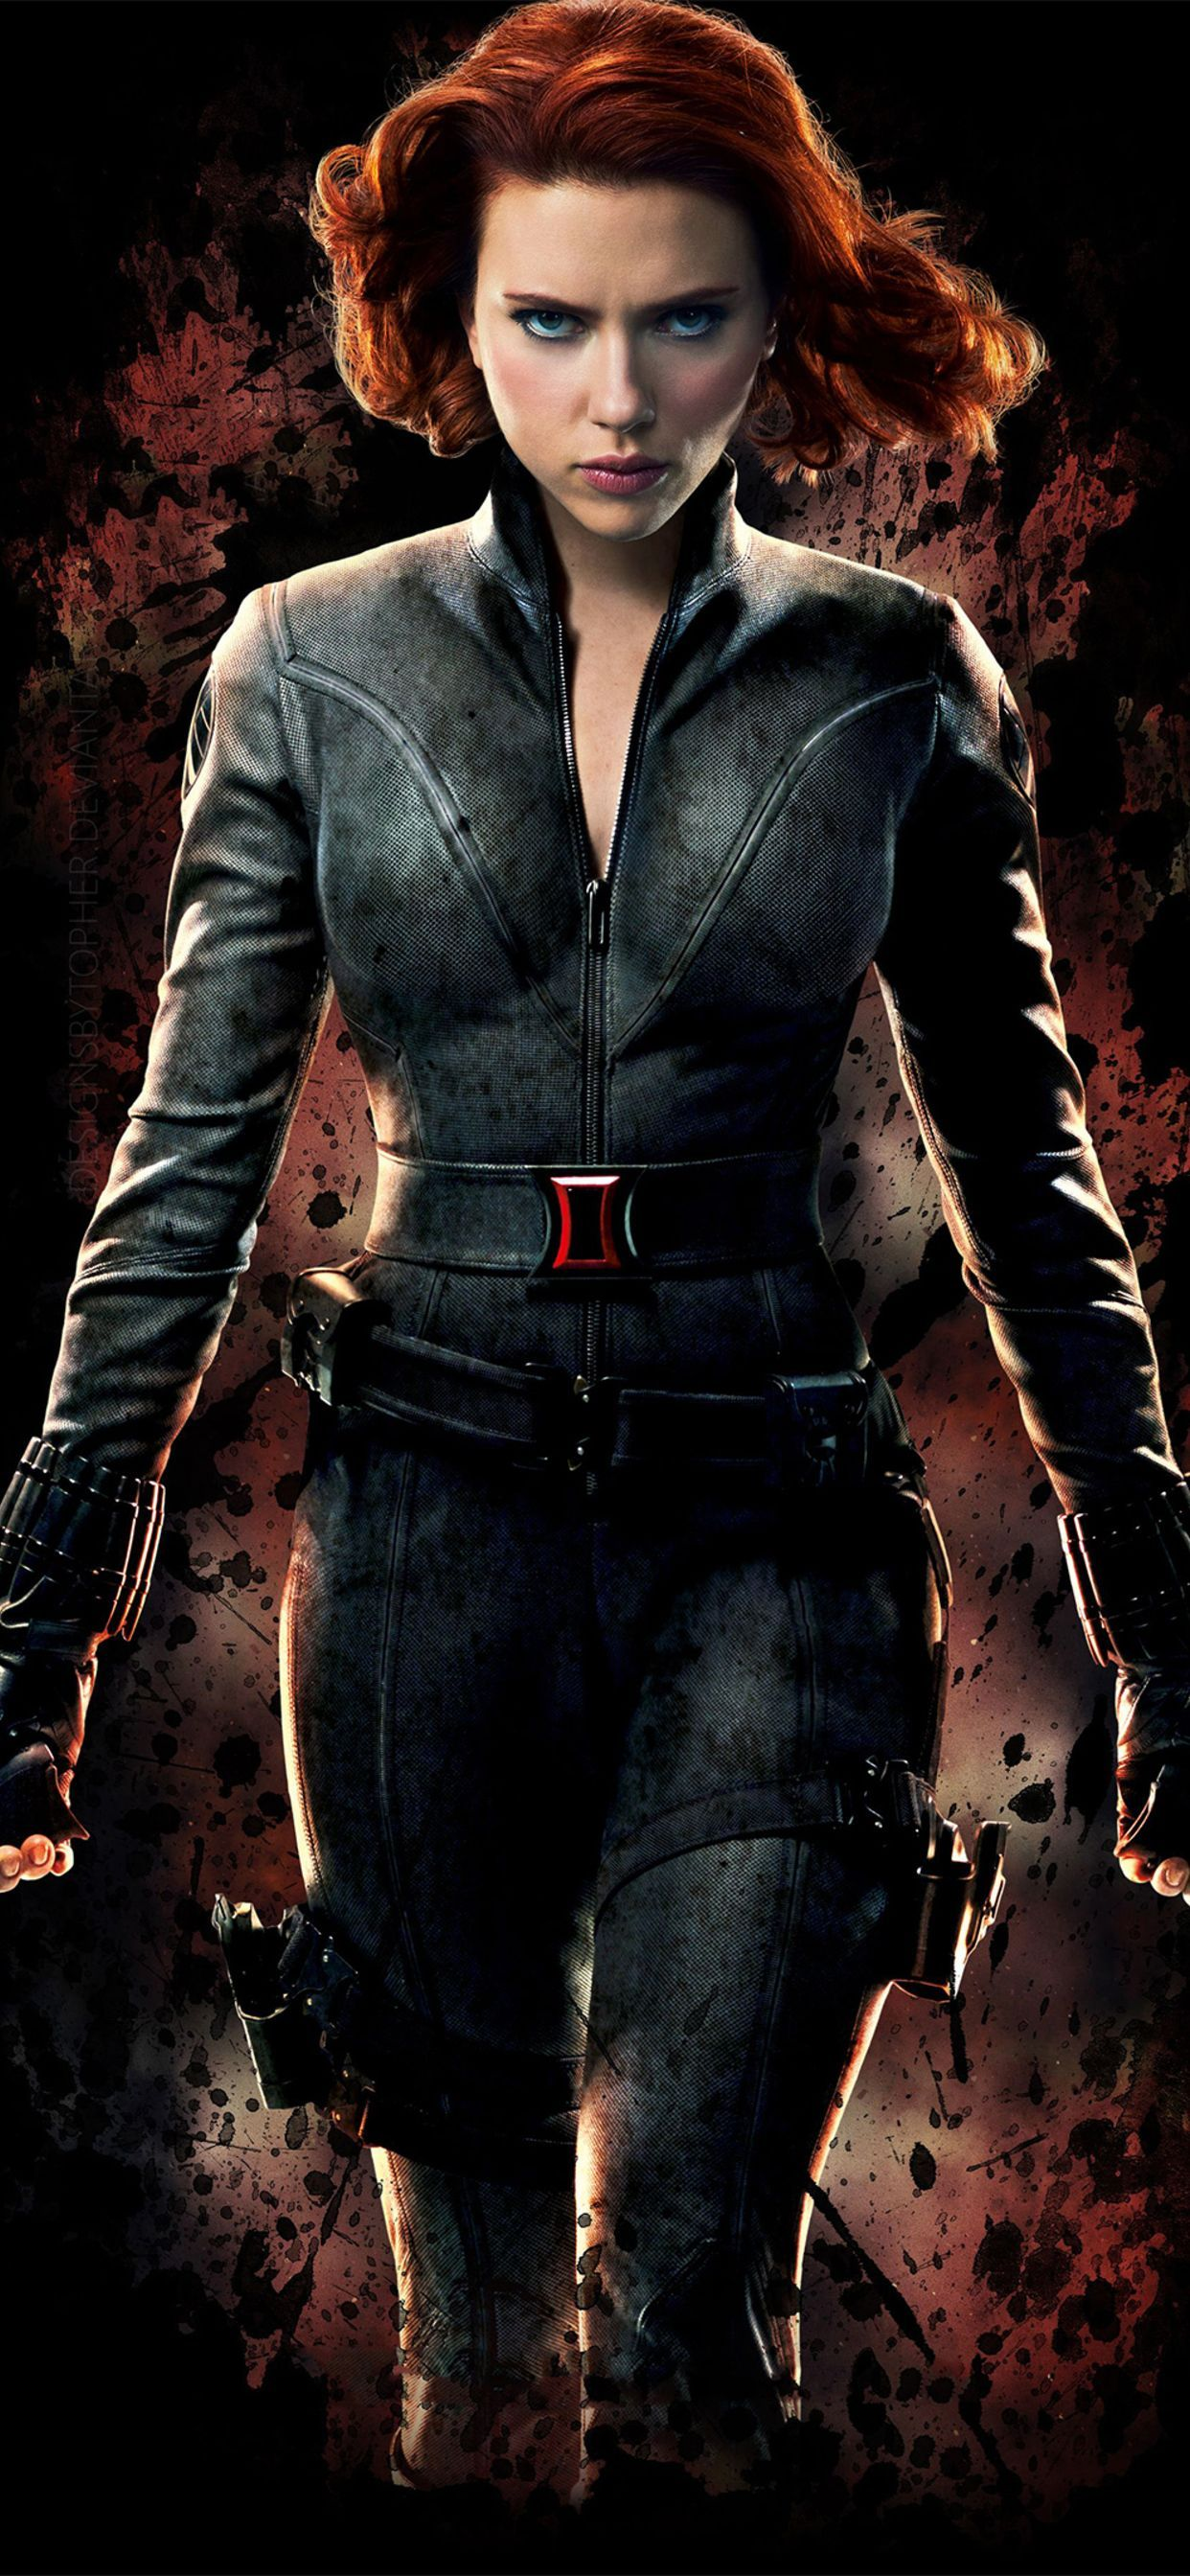 Black Widow HD Android Mobile Wallpapers - Wallpaper Cave